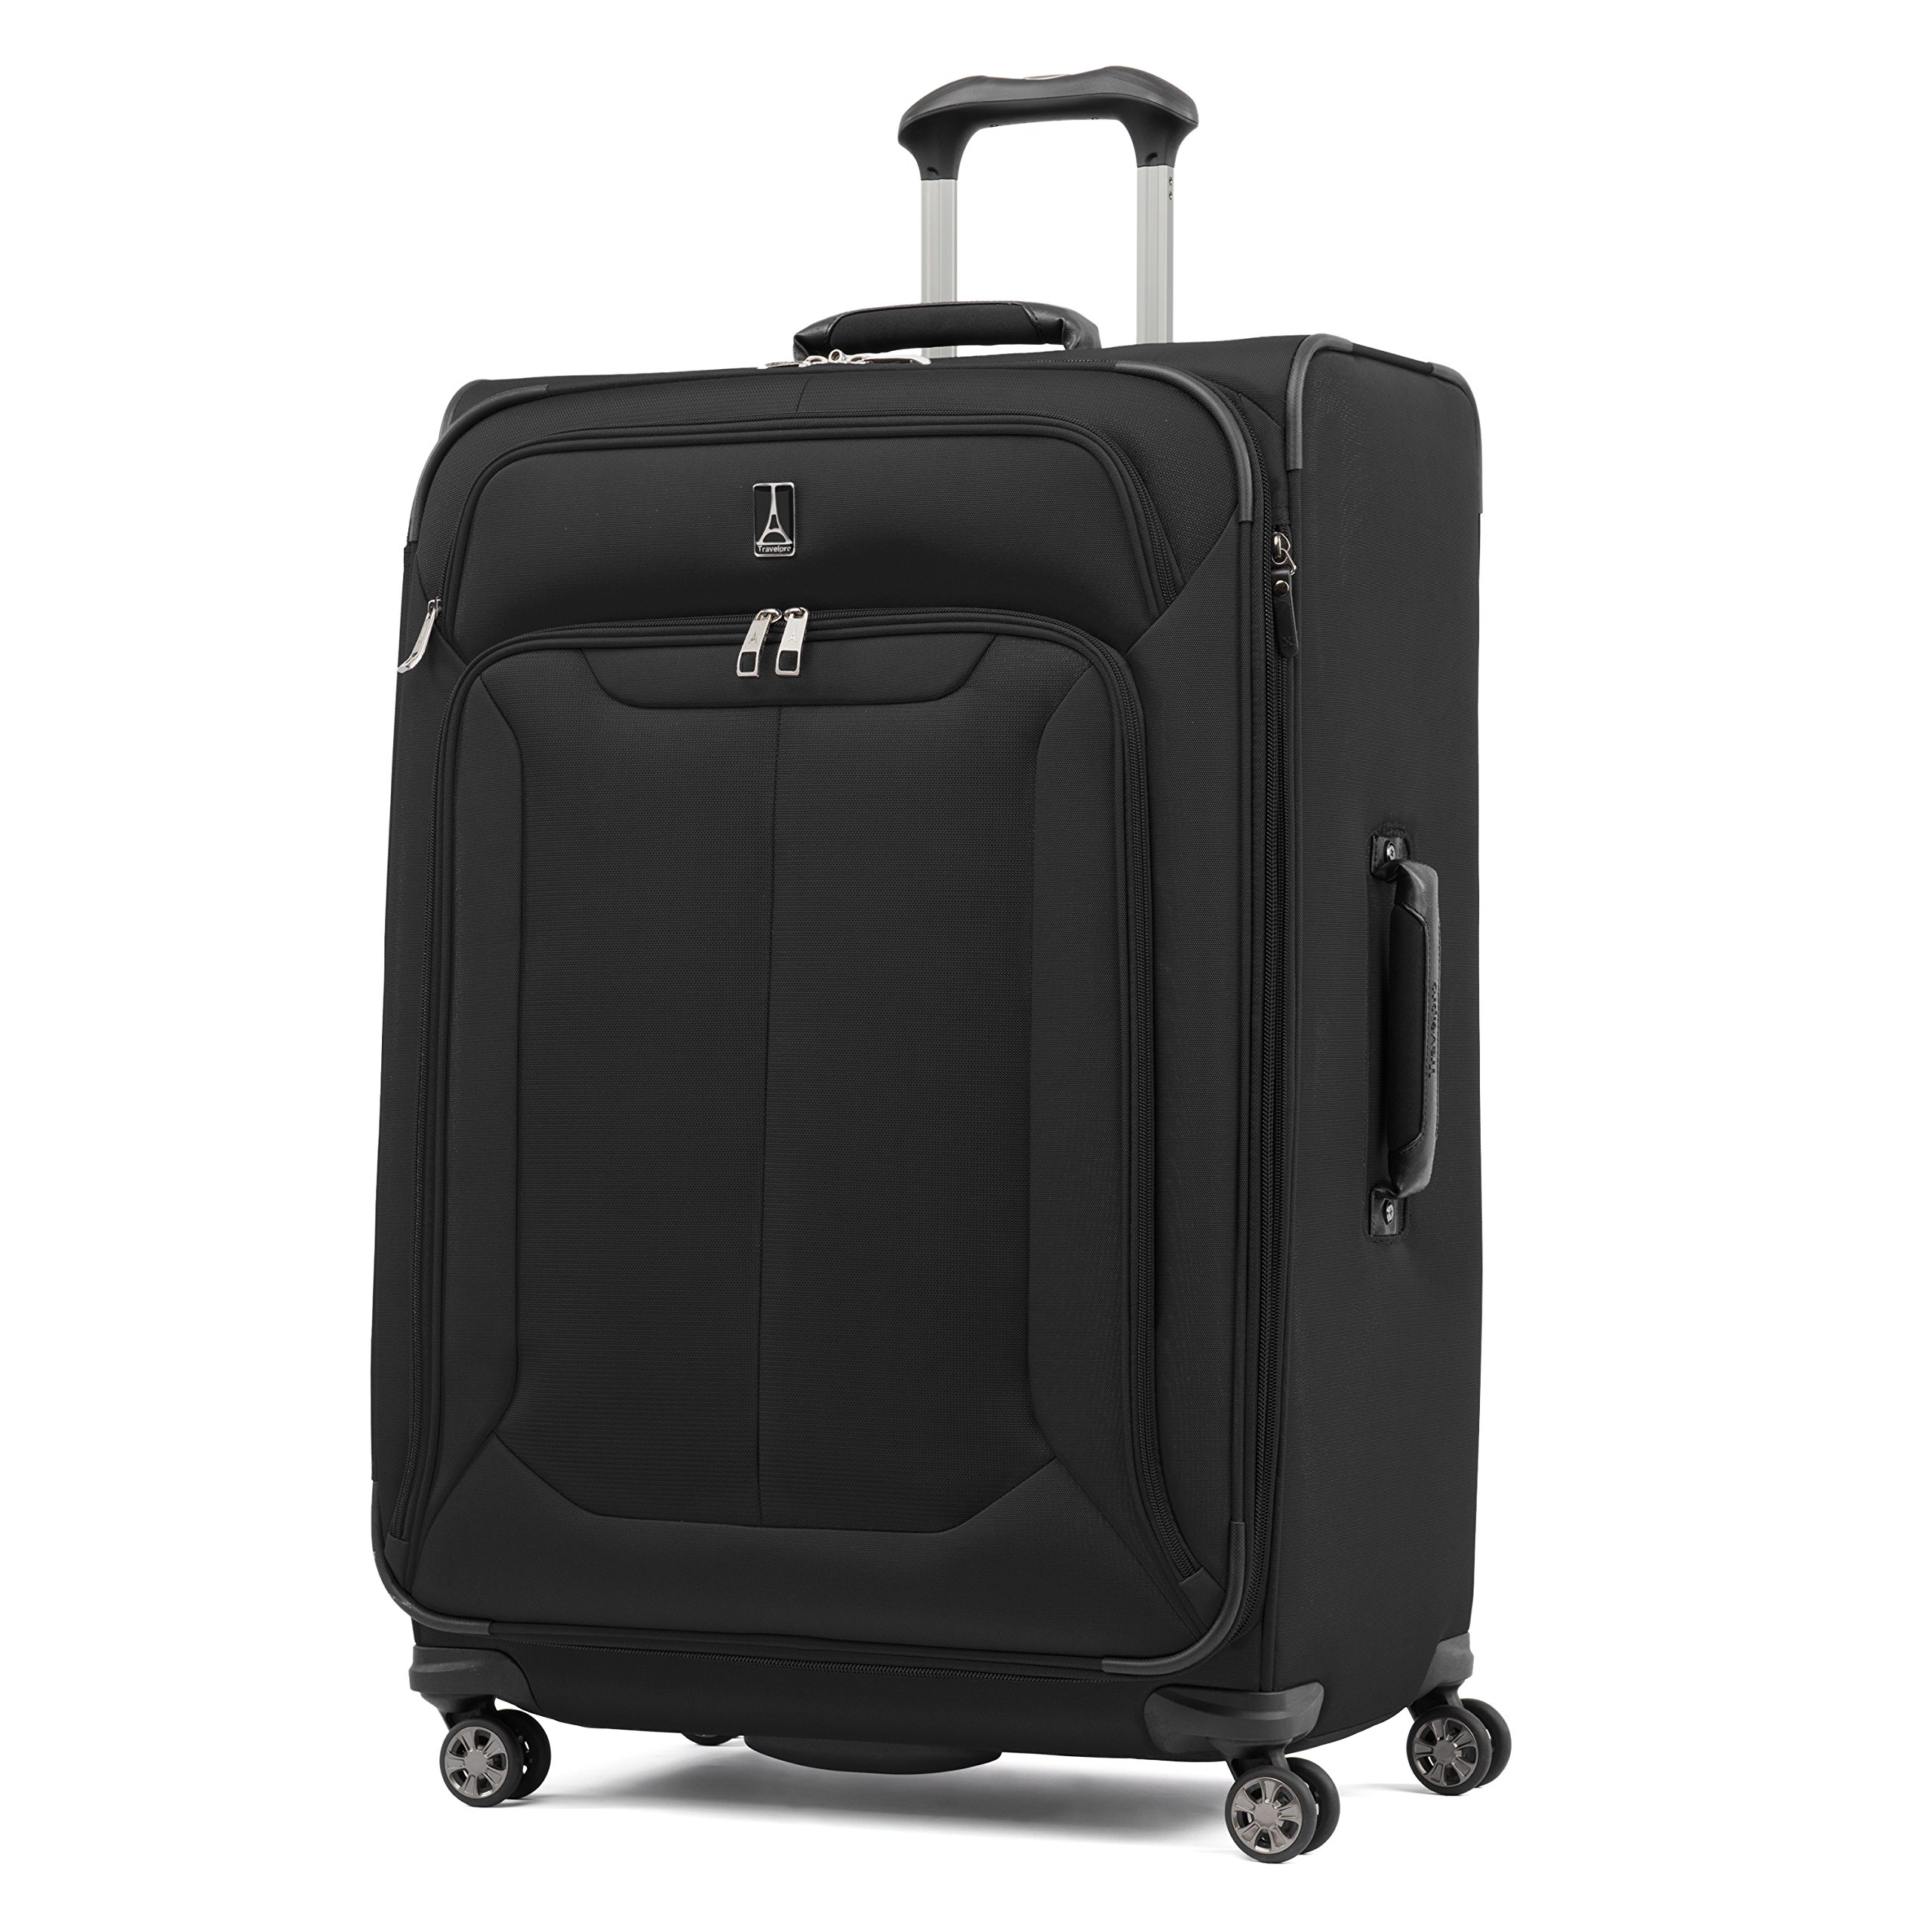 Travelpro Skypro Lite 29'' Expandable 8-Wheel Luggage Spinner (Black)